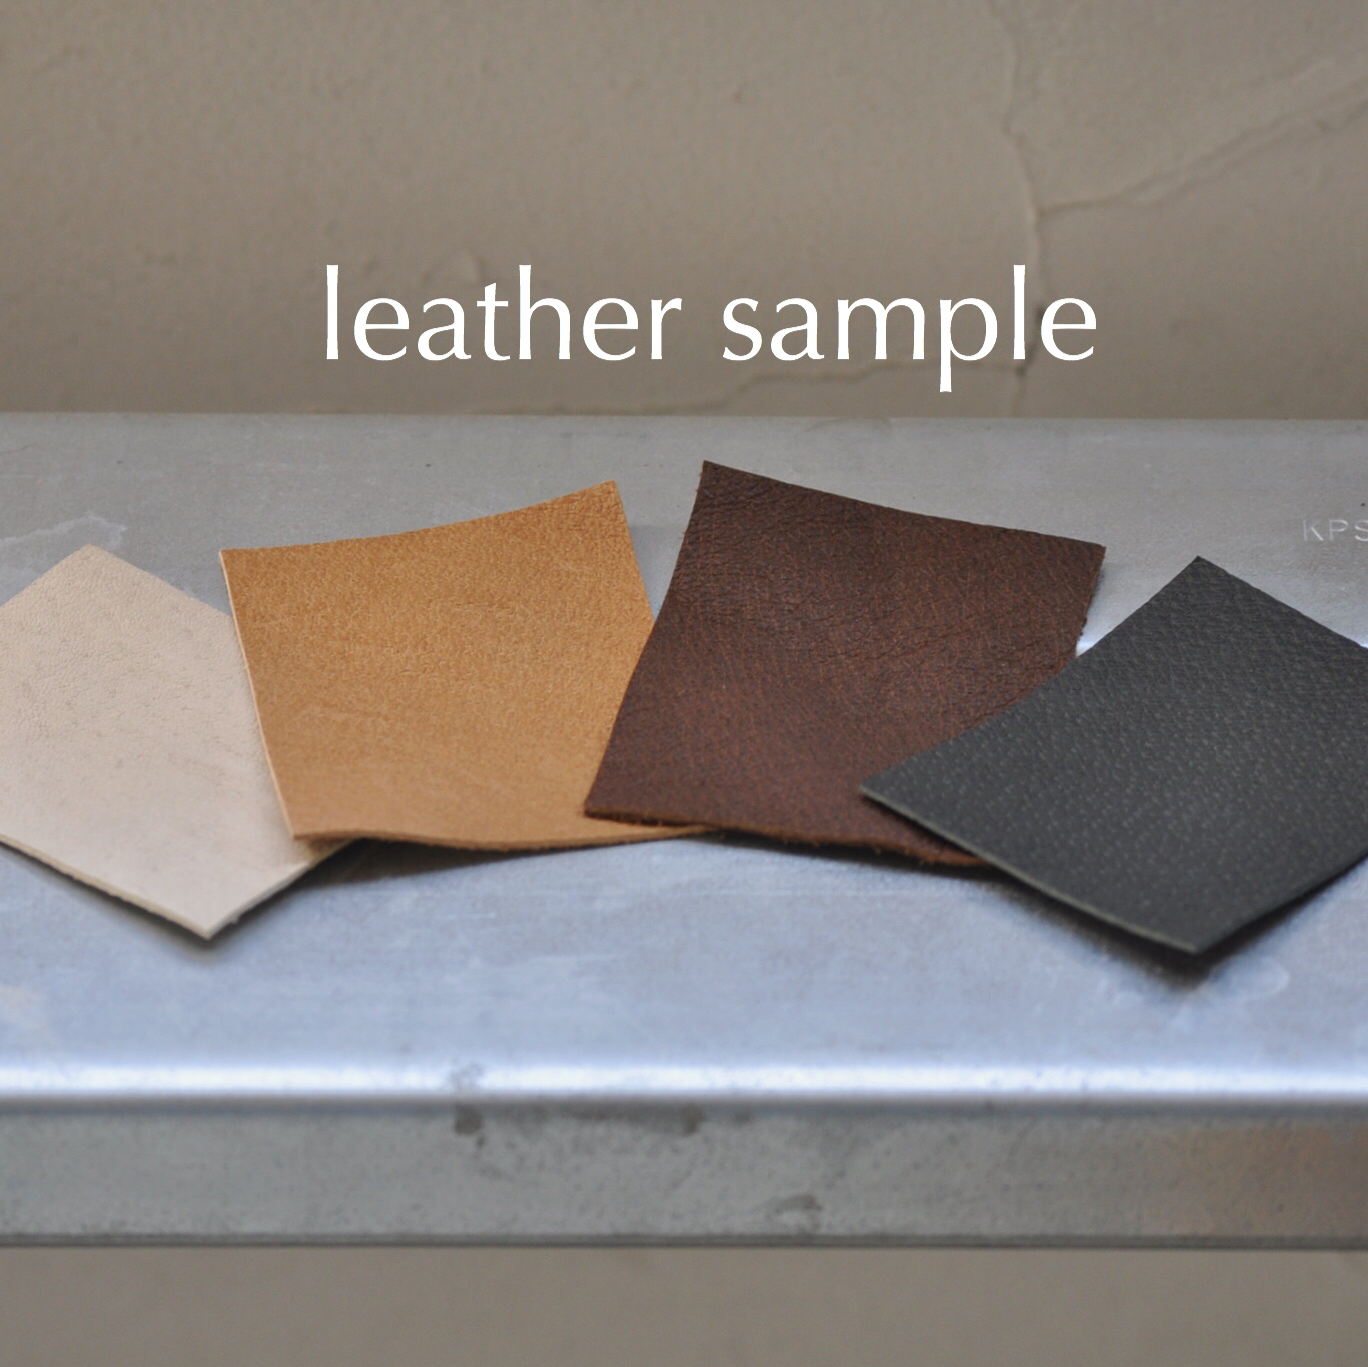 leather sample【豚革】